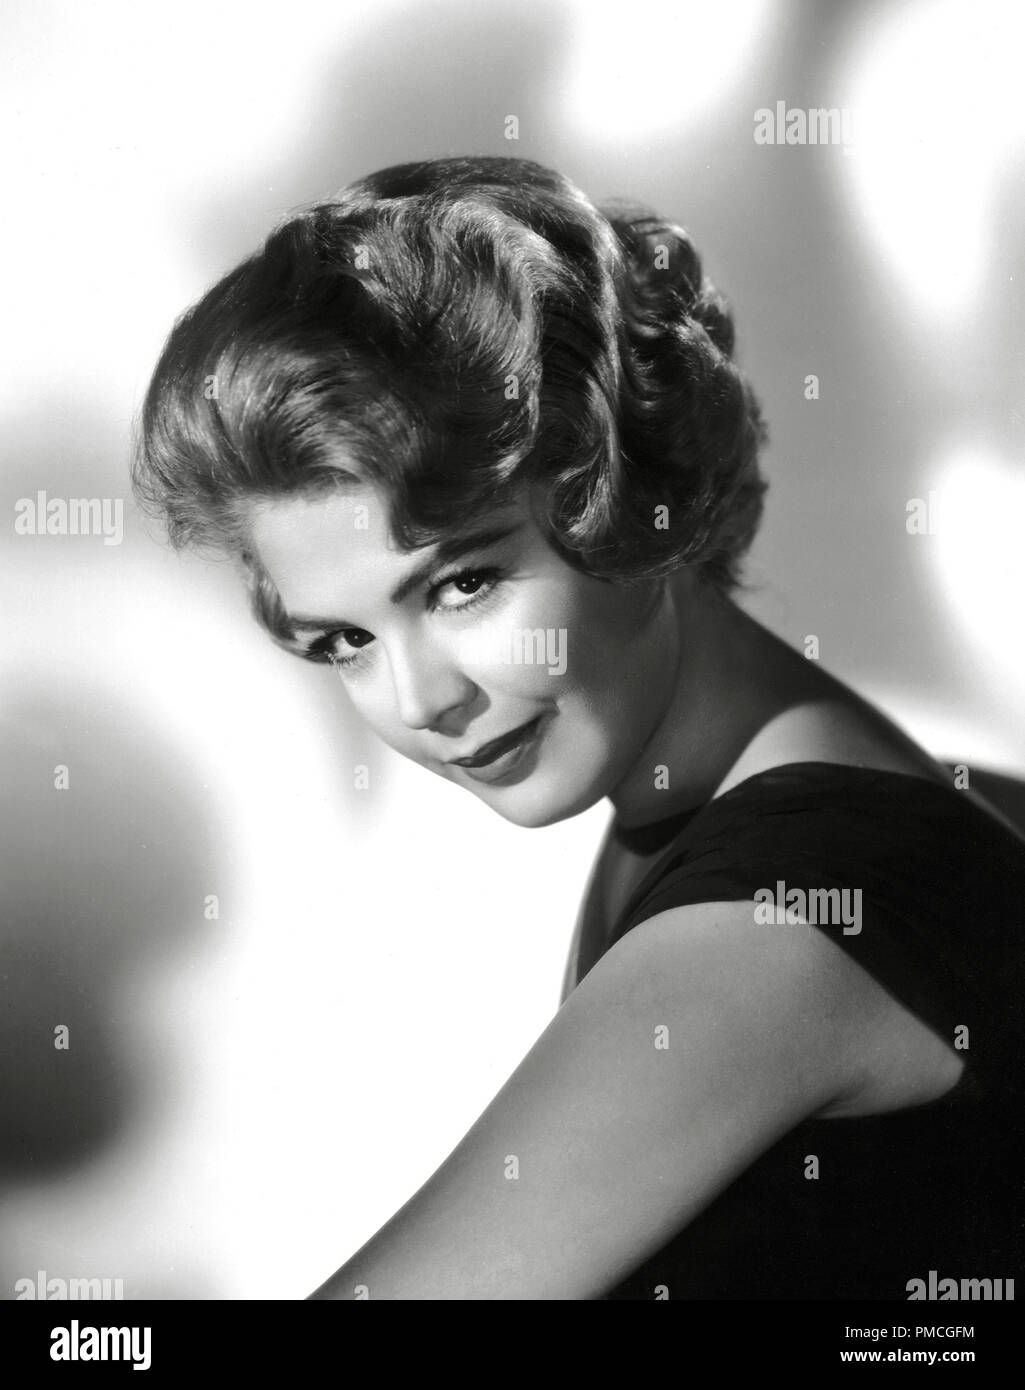 Sandra dee portrait in black 1960 universal file reference 33536 851tha for editorial use only all rights reserved